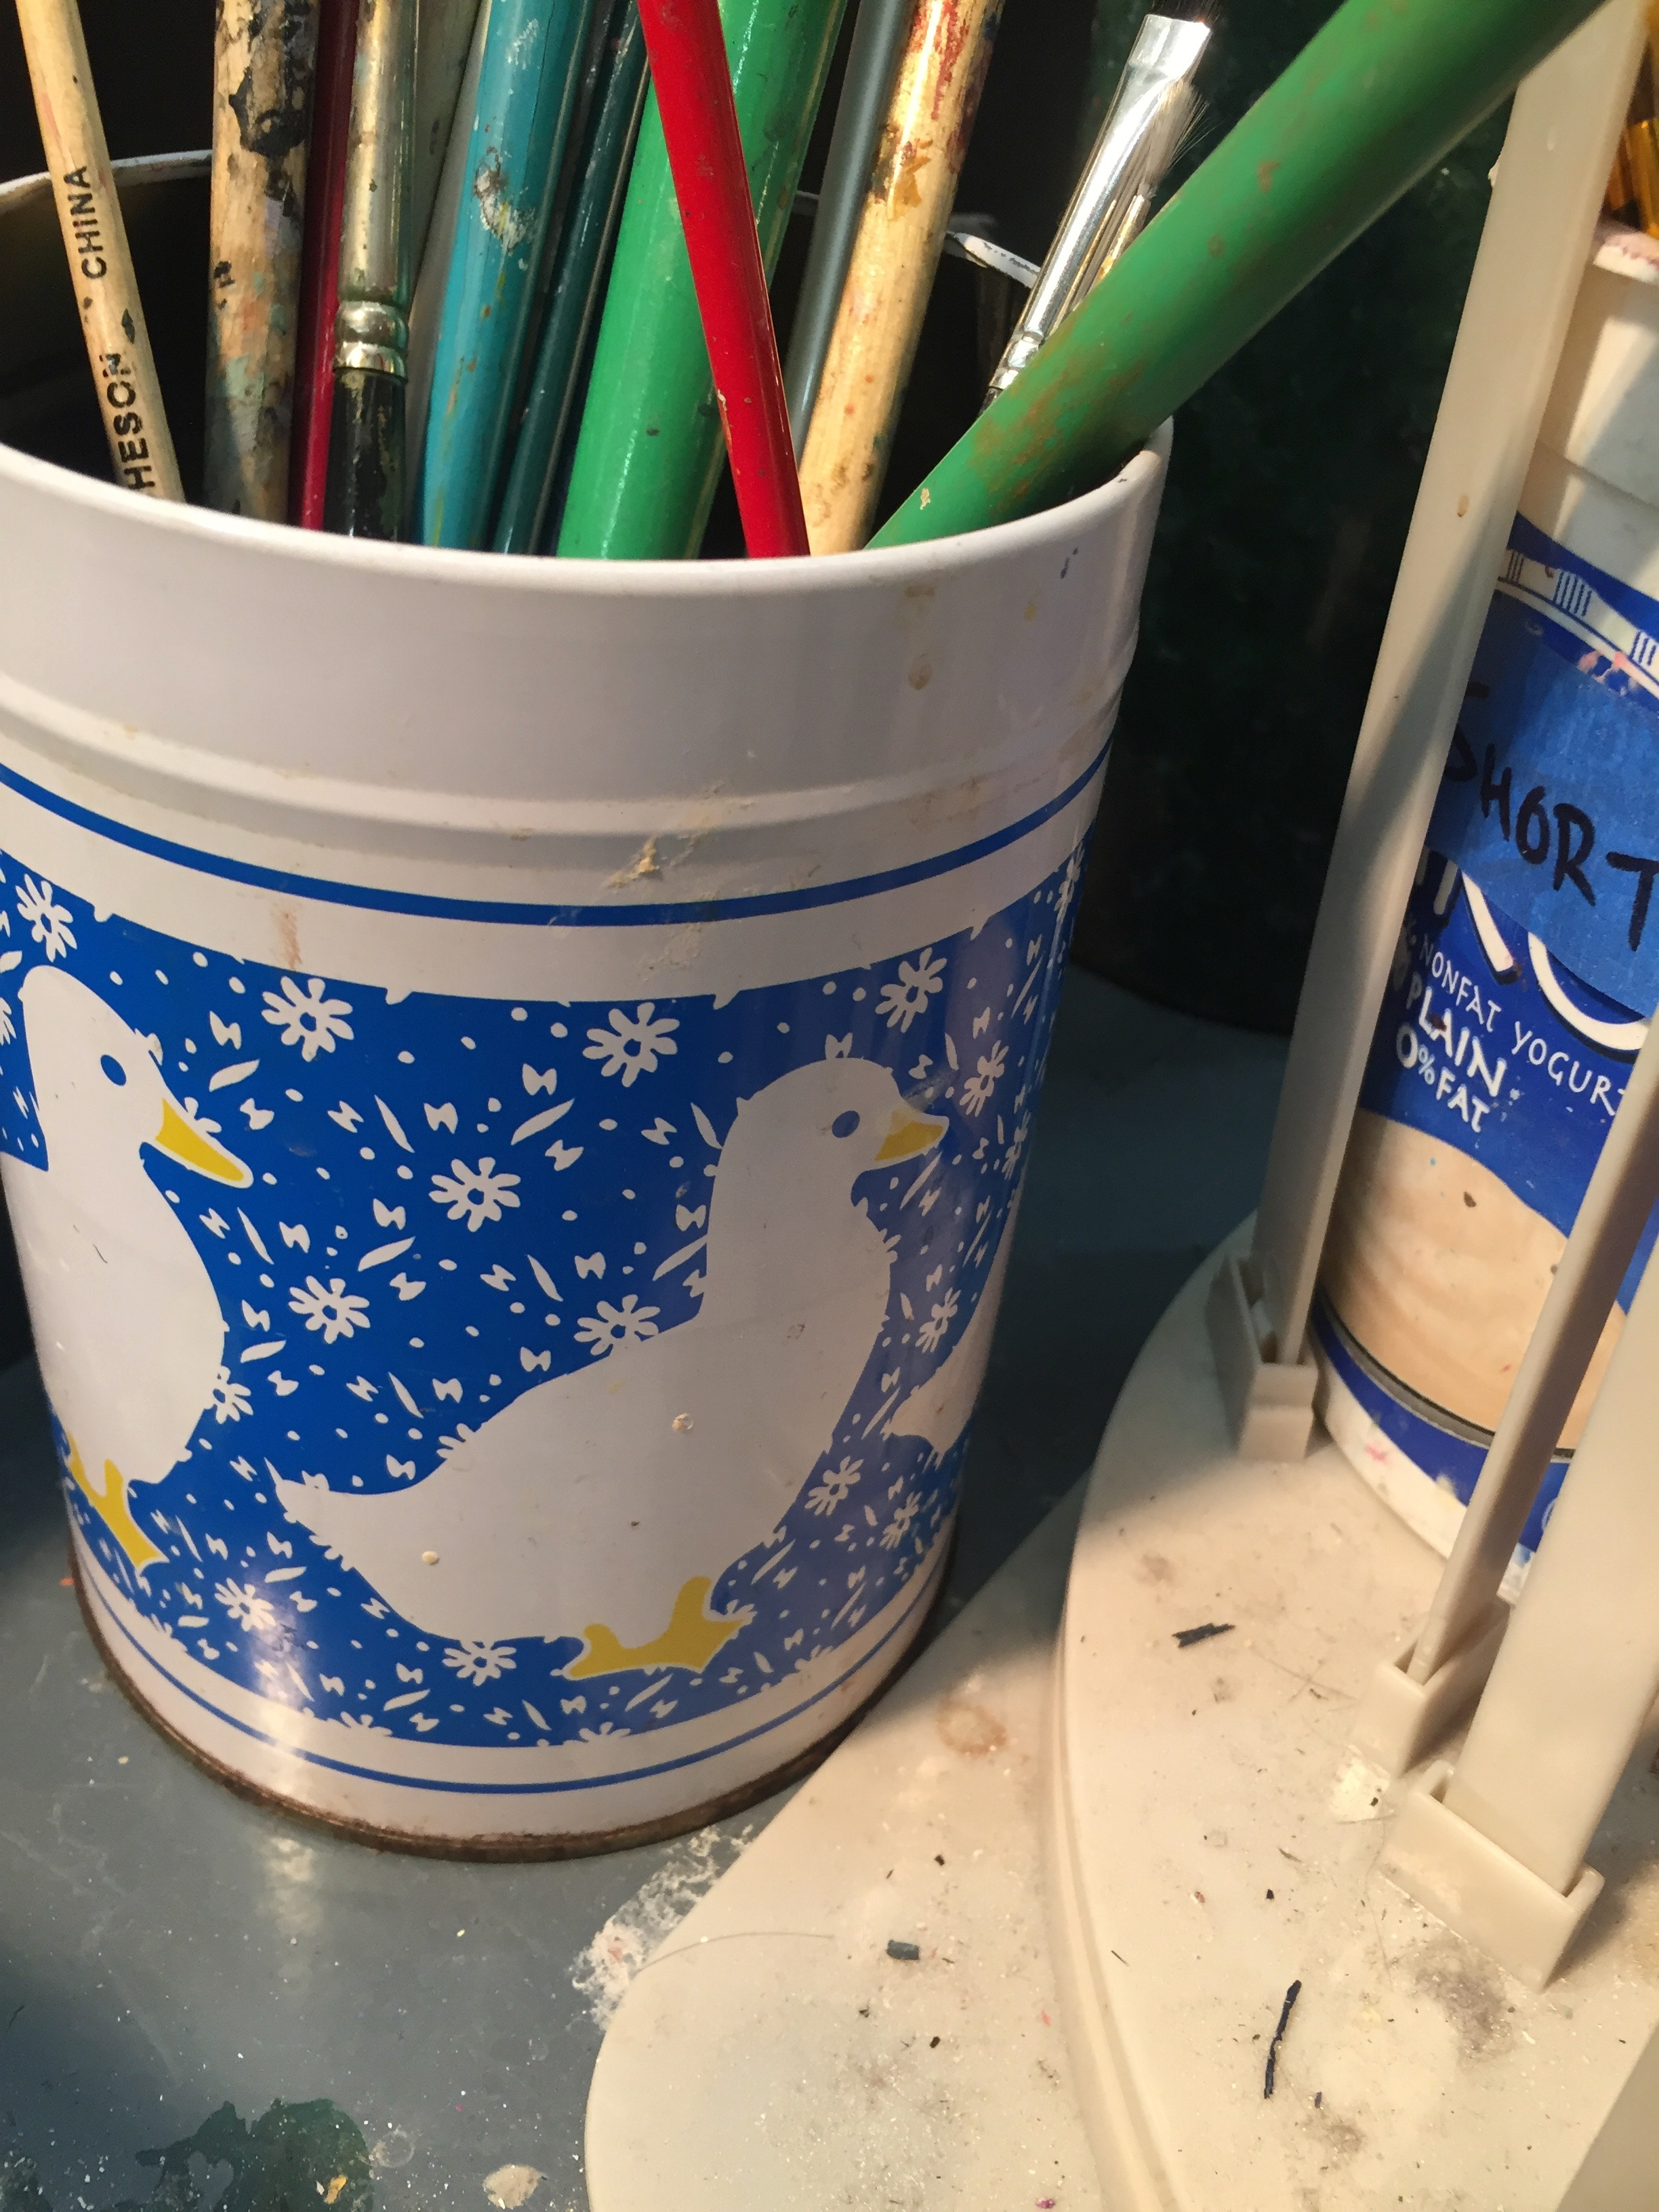 Was inspired by these ducks on the paint brush holder to use that imagery for my piece